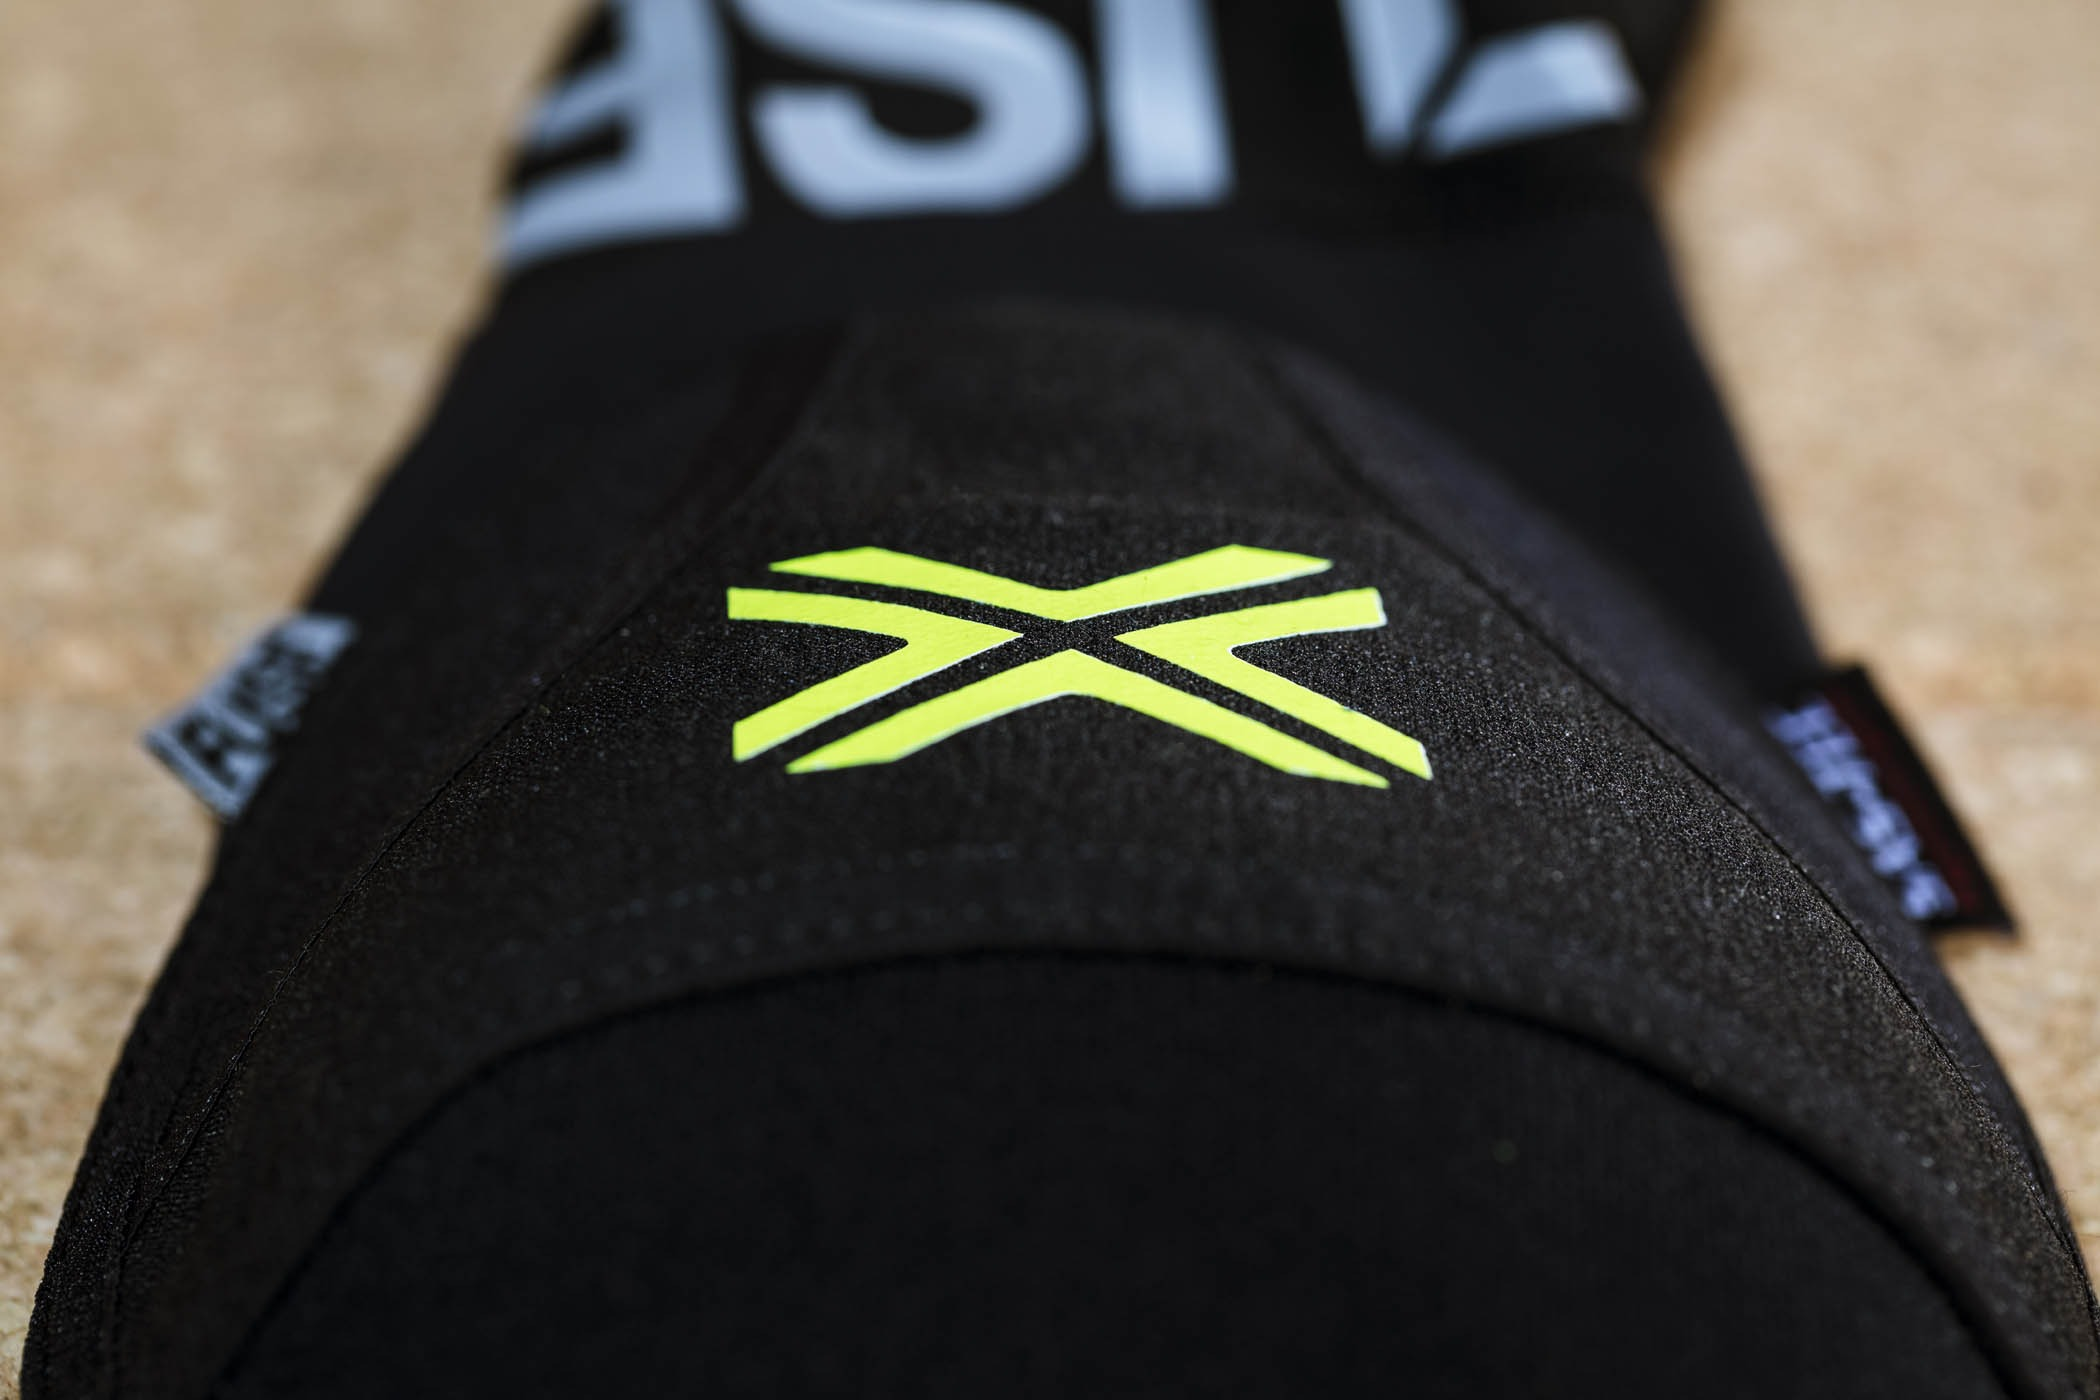 FUSE OMEGA KNEE PADS – REVIEW